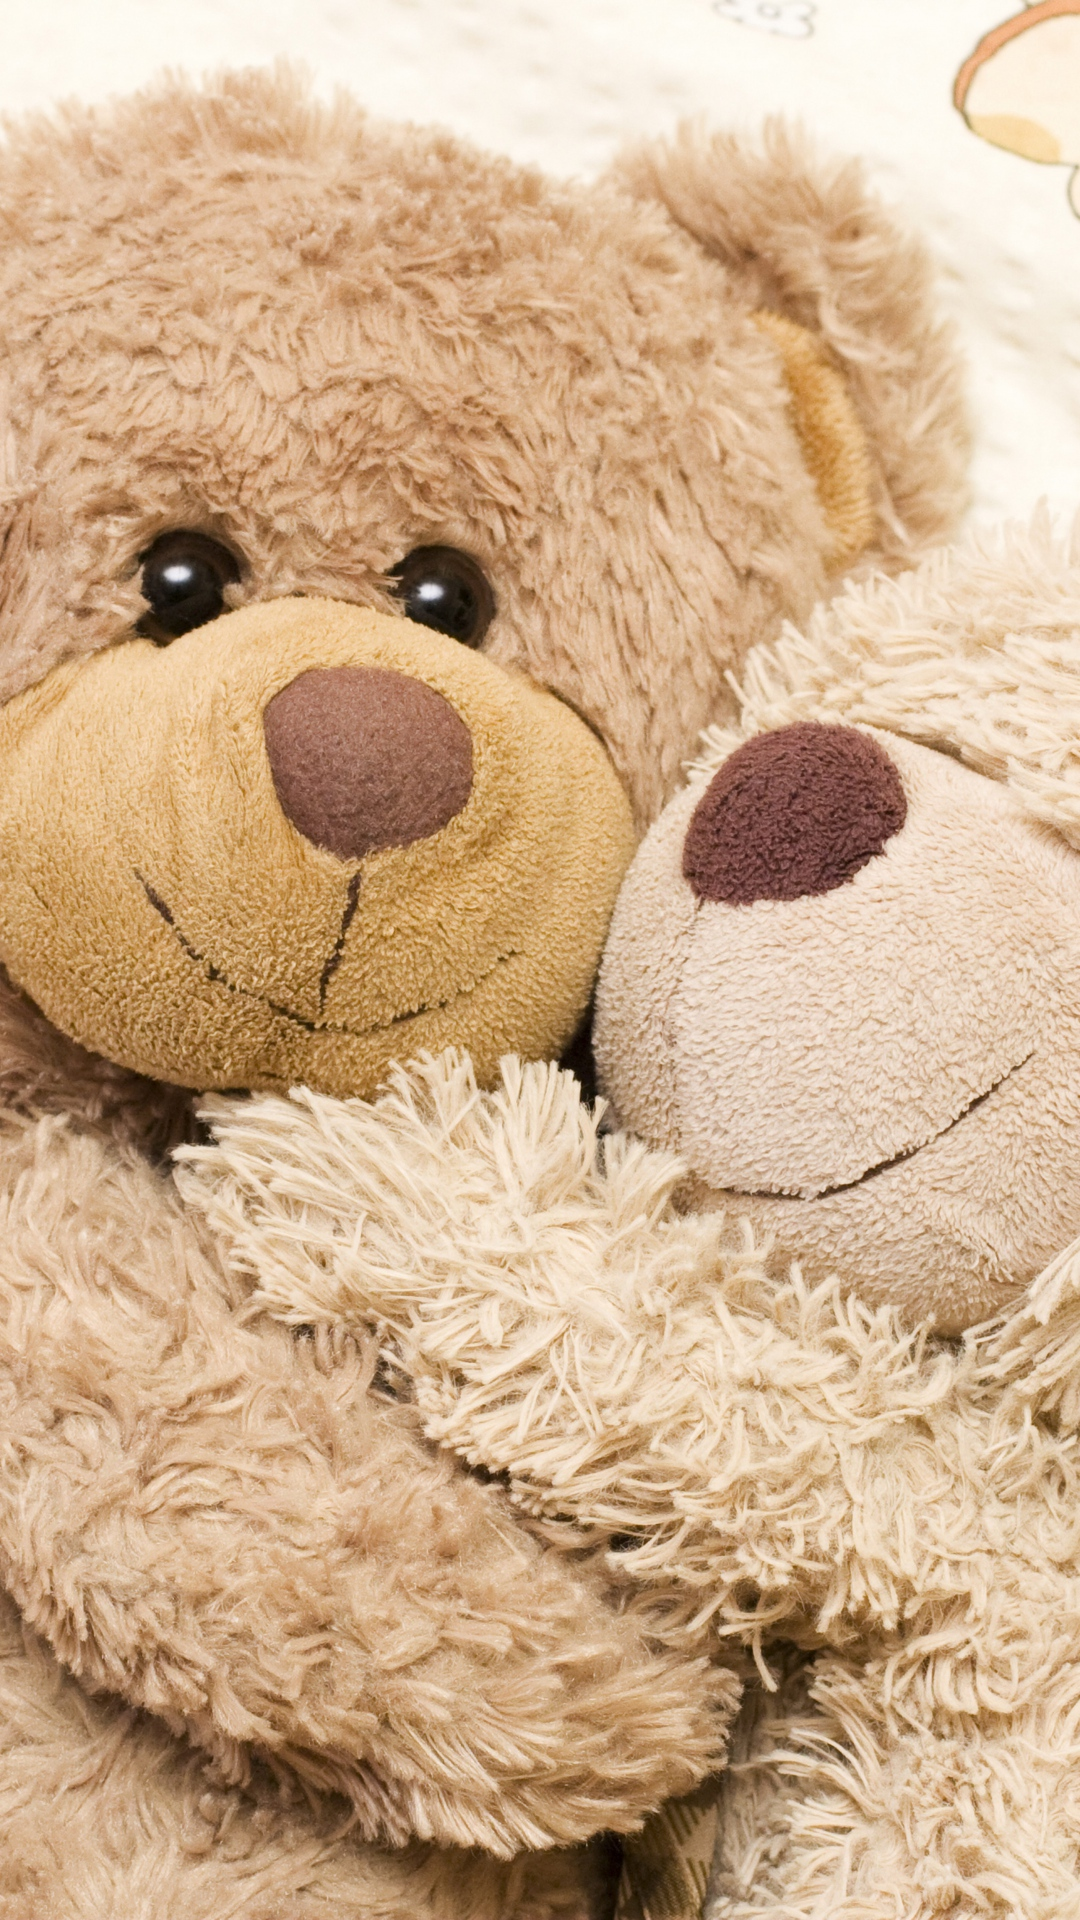 Teddy bear hug day wallpaper mobile wallpaper phone background voltagebd Gallery